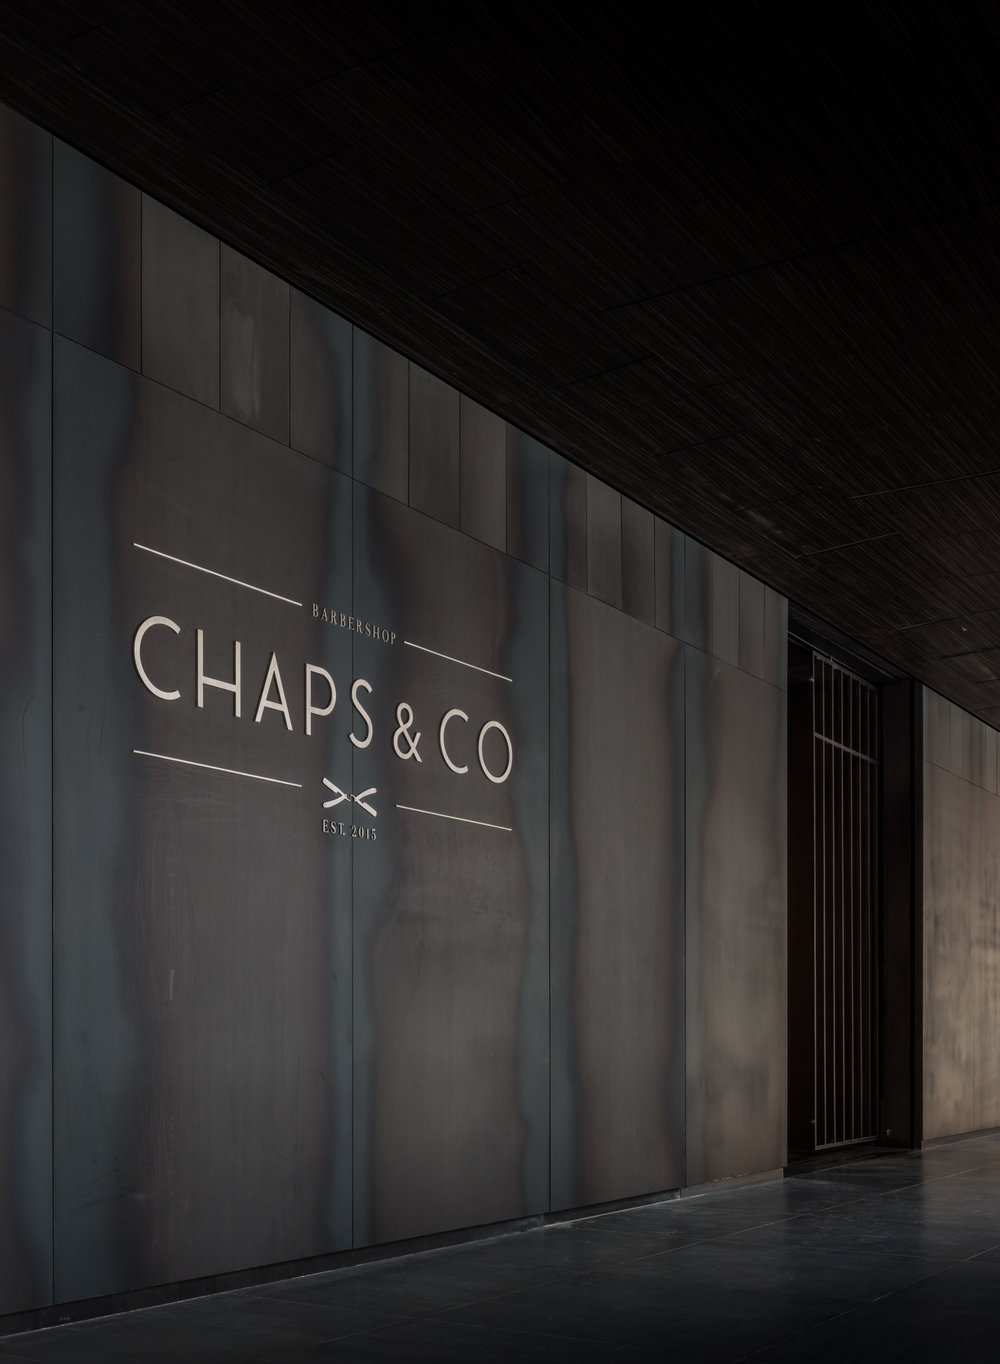 NW - Chaps & Co D3-4.jpg